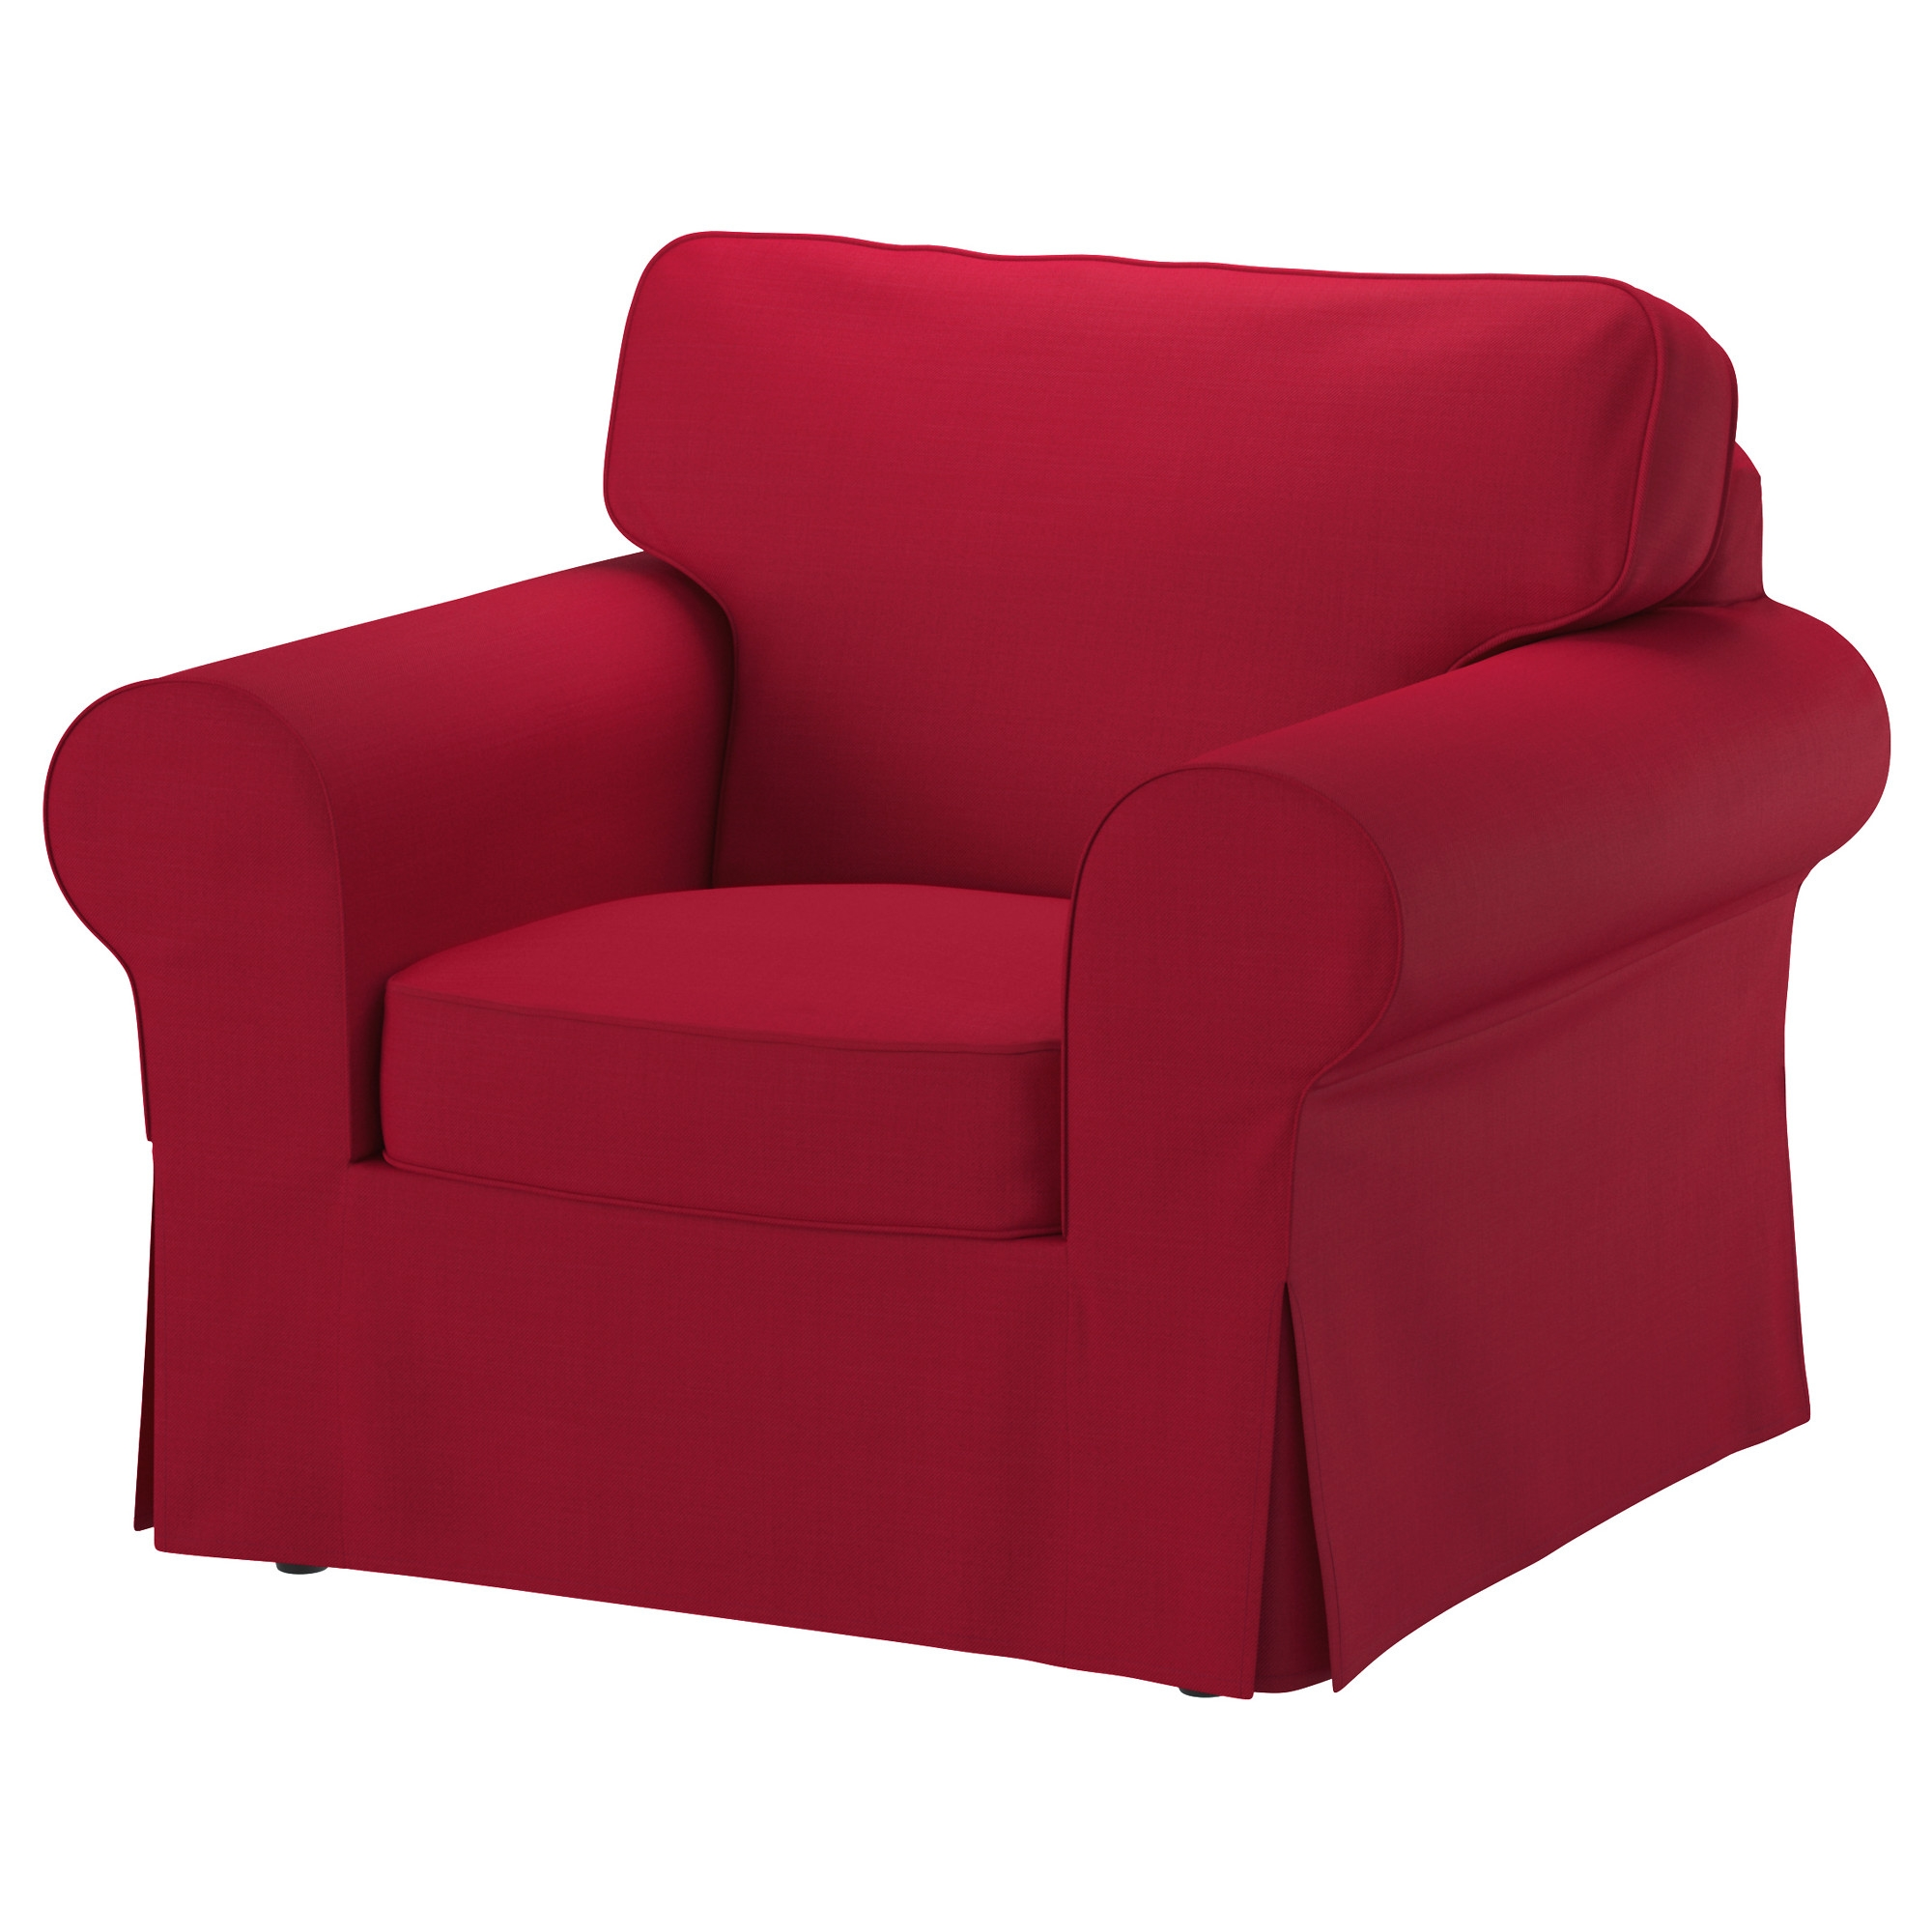 Sofas Center Covers For Sofas And Chairs Sectional With Throughout Covers For Sofas (Image 11 of 15)